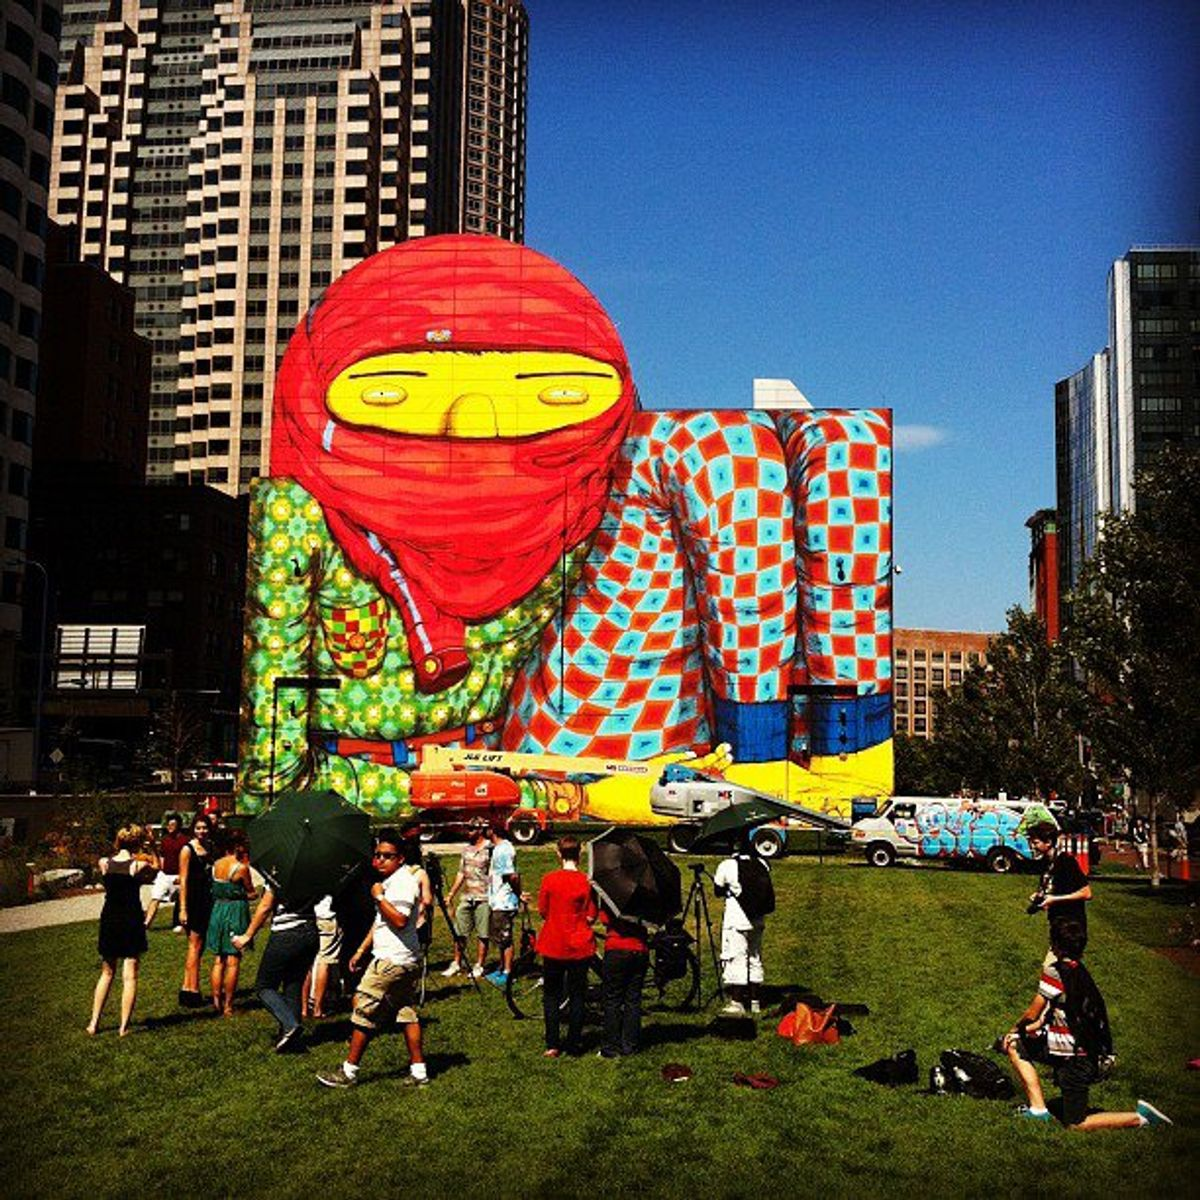 A new Os Gemeos painting rises on Boston's Rose Fitzgerald Kennedy Greenway at Dewey Square to coincide with their show at the city's Institute for Contemporary Art (via Geoff Hargadon's Instagram)